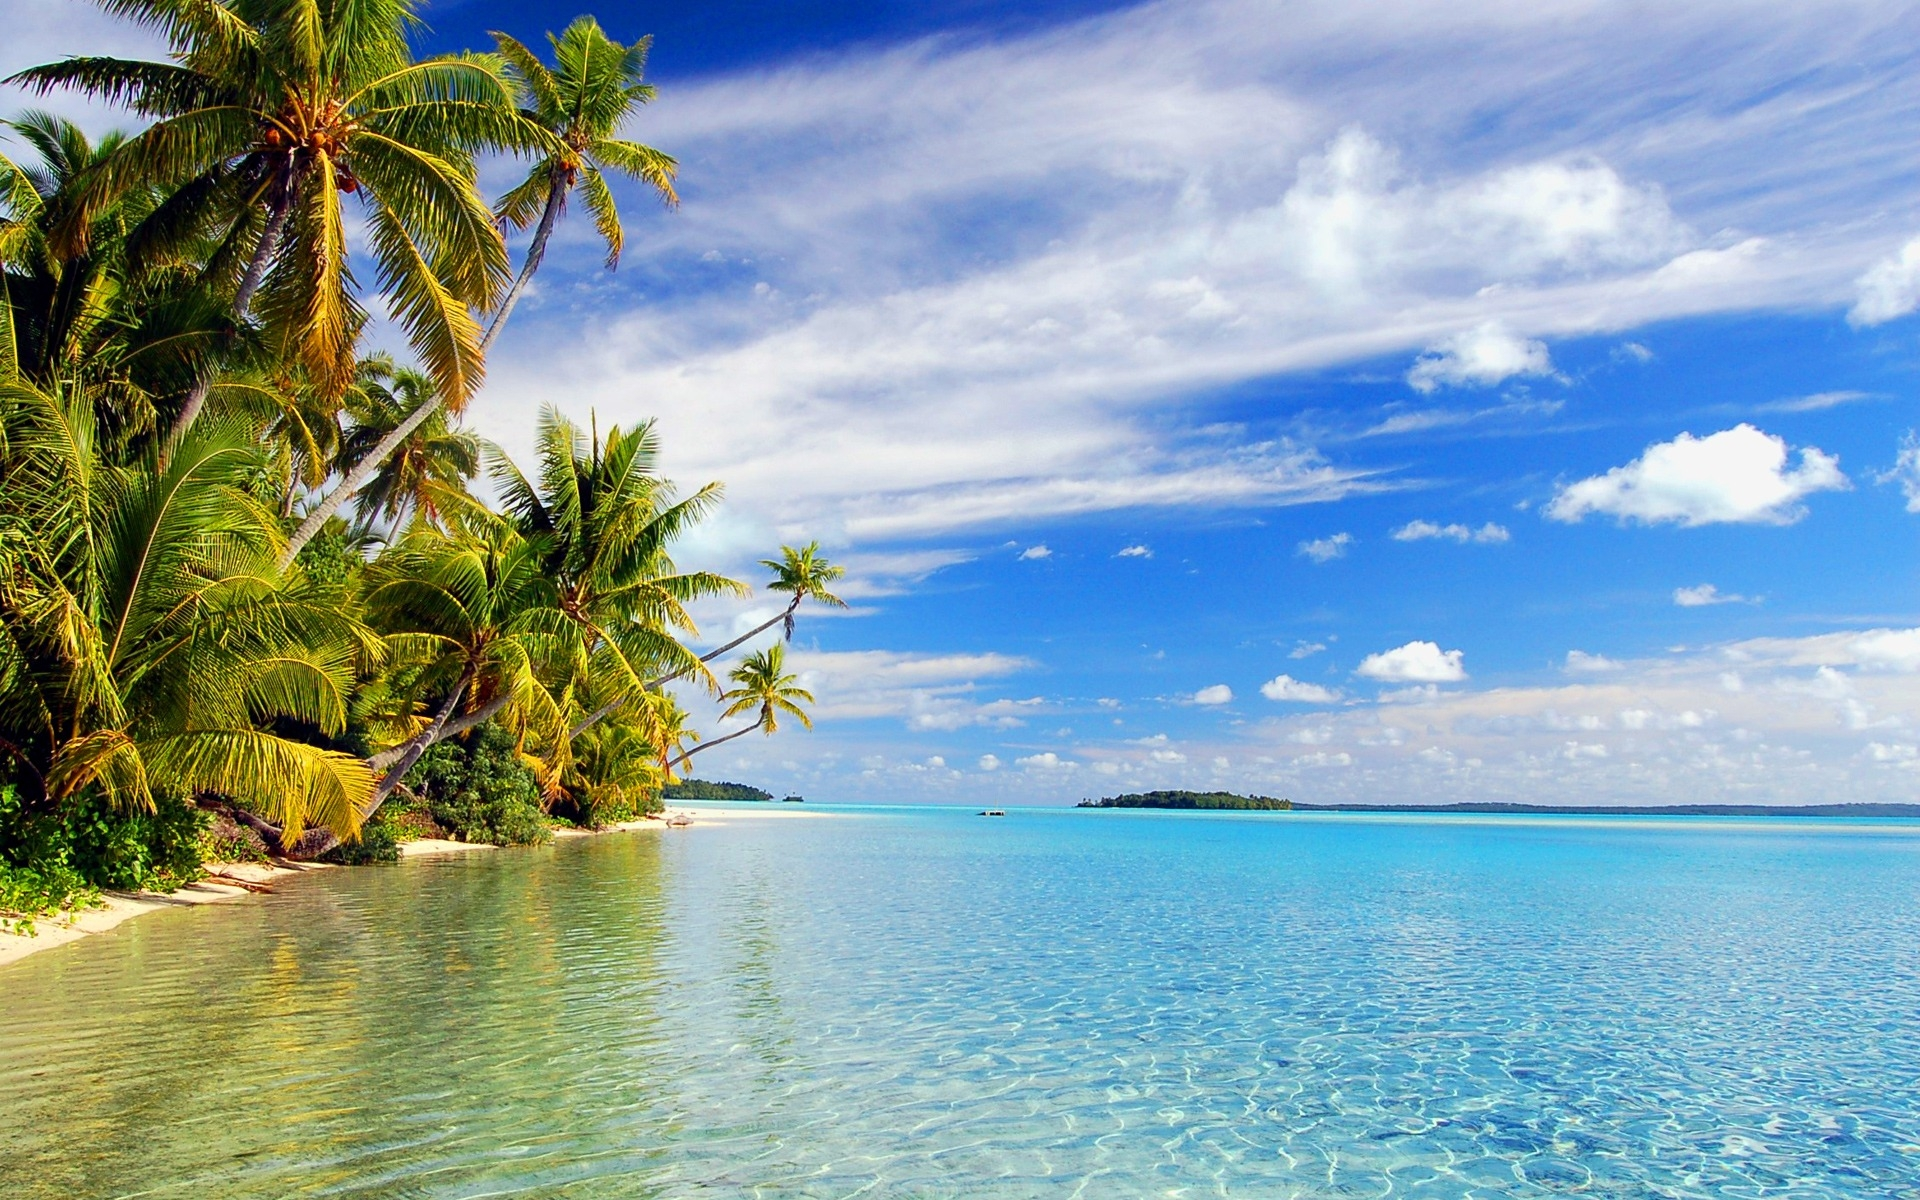 Tropical Island Beaches HD Wallpaper Background Images 1920x1200